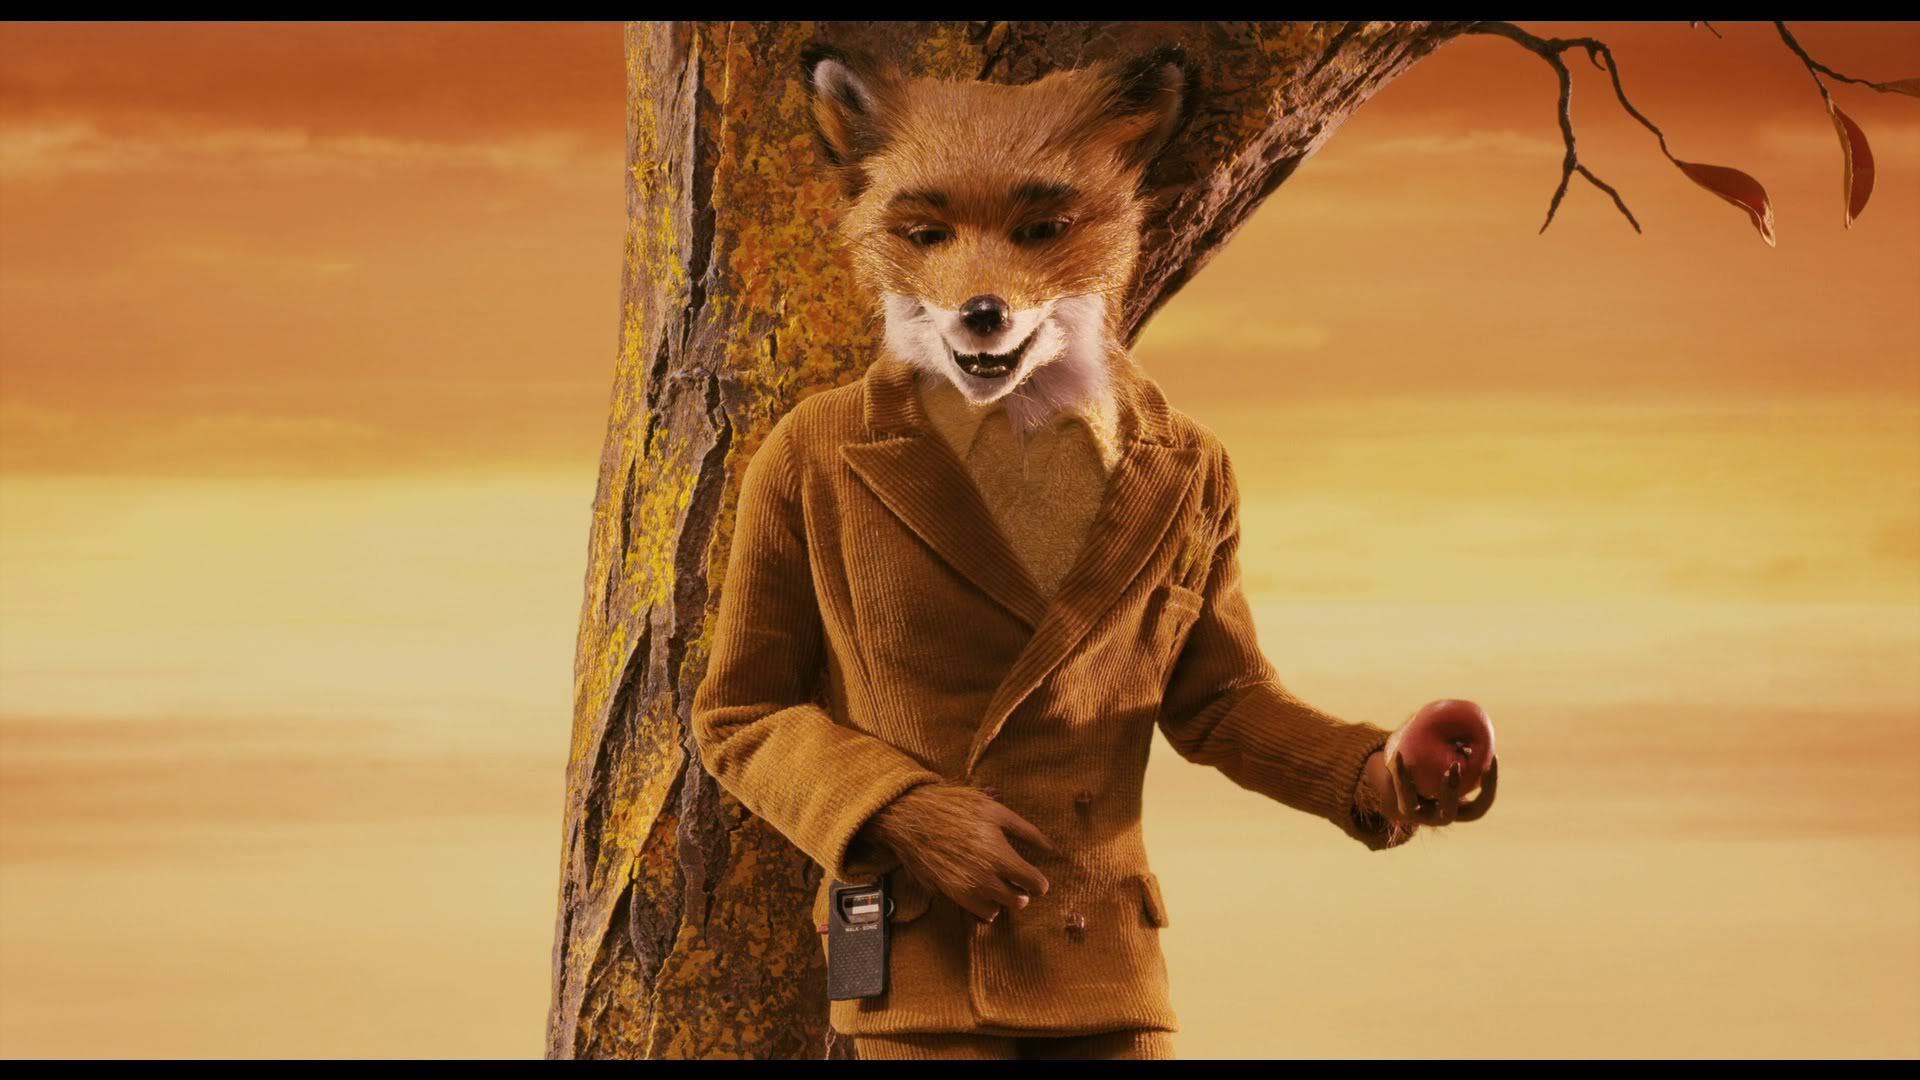 Fantastic Mr Fox Fantastic Mr Fox Wes Anderson Characters Temple Of Light